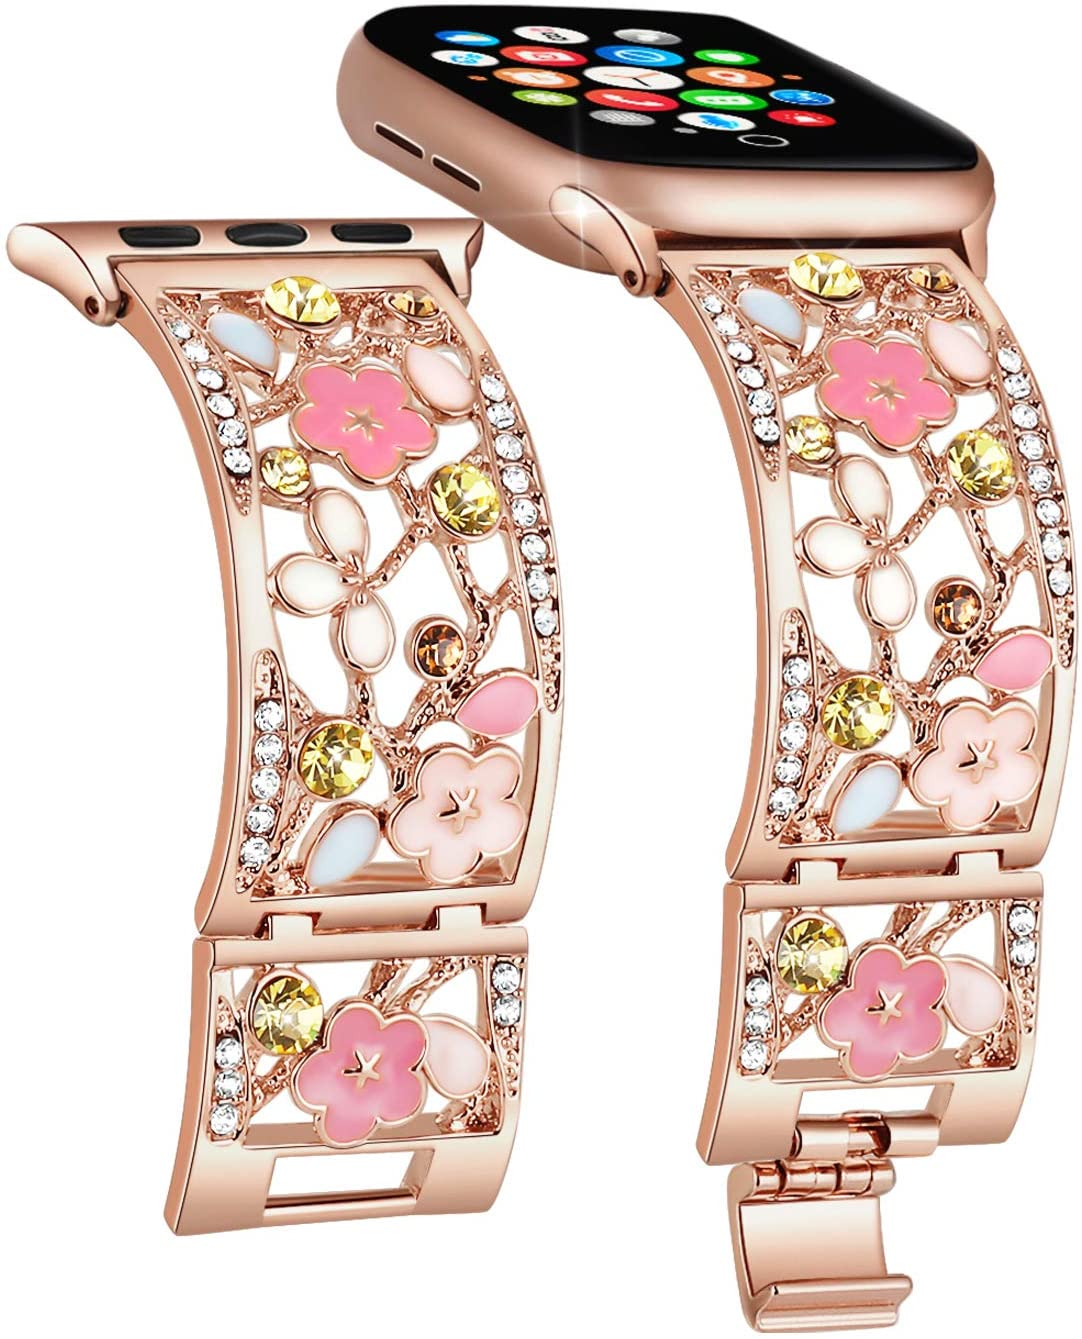 Duoan Floral Bracelet Compatible with Apple Watch Band 38mm 40mm 42mm 44mm iWatch Bands Series 6 5 4, Bling Crystal Dressy Hollow Metal Cuff Strap, Chic Women's Jewelry Wristband (42mm/44mm Rose Gold)